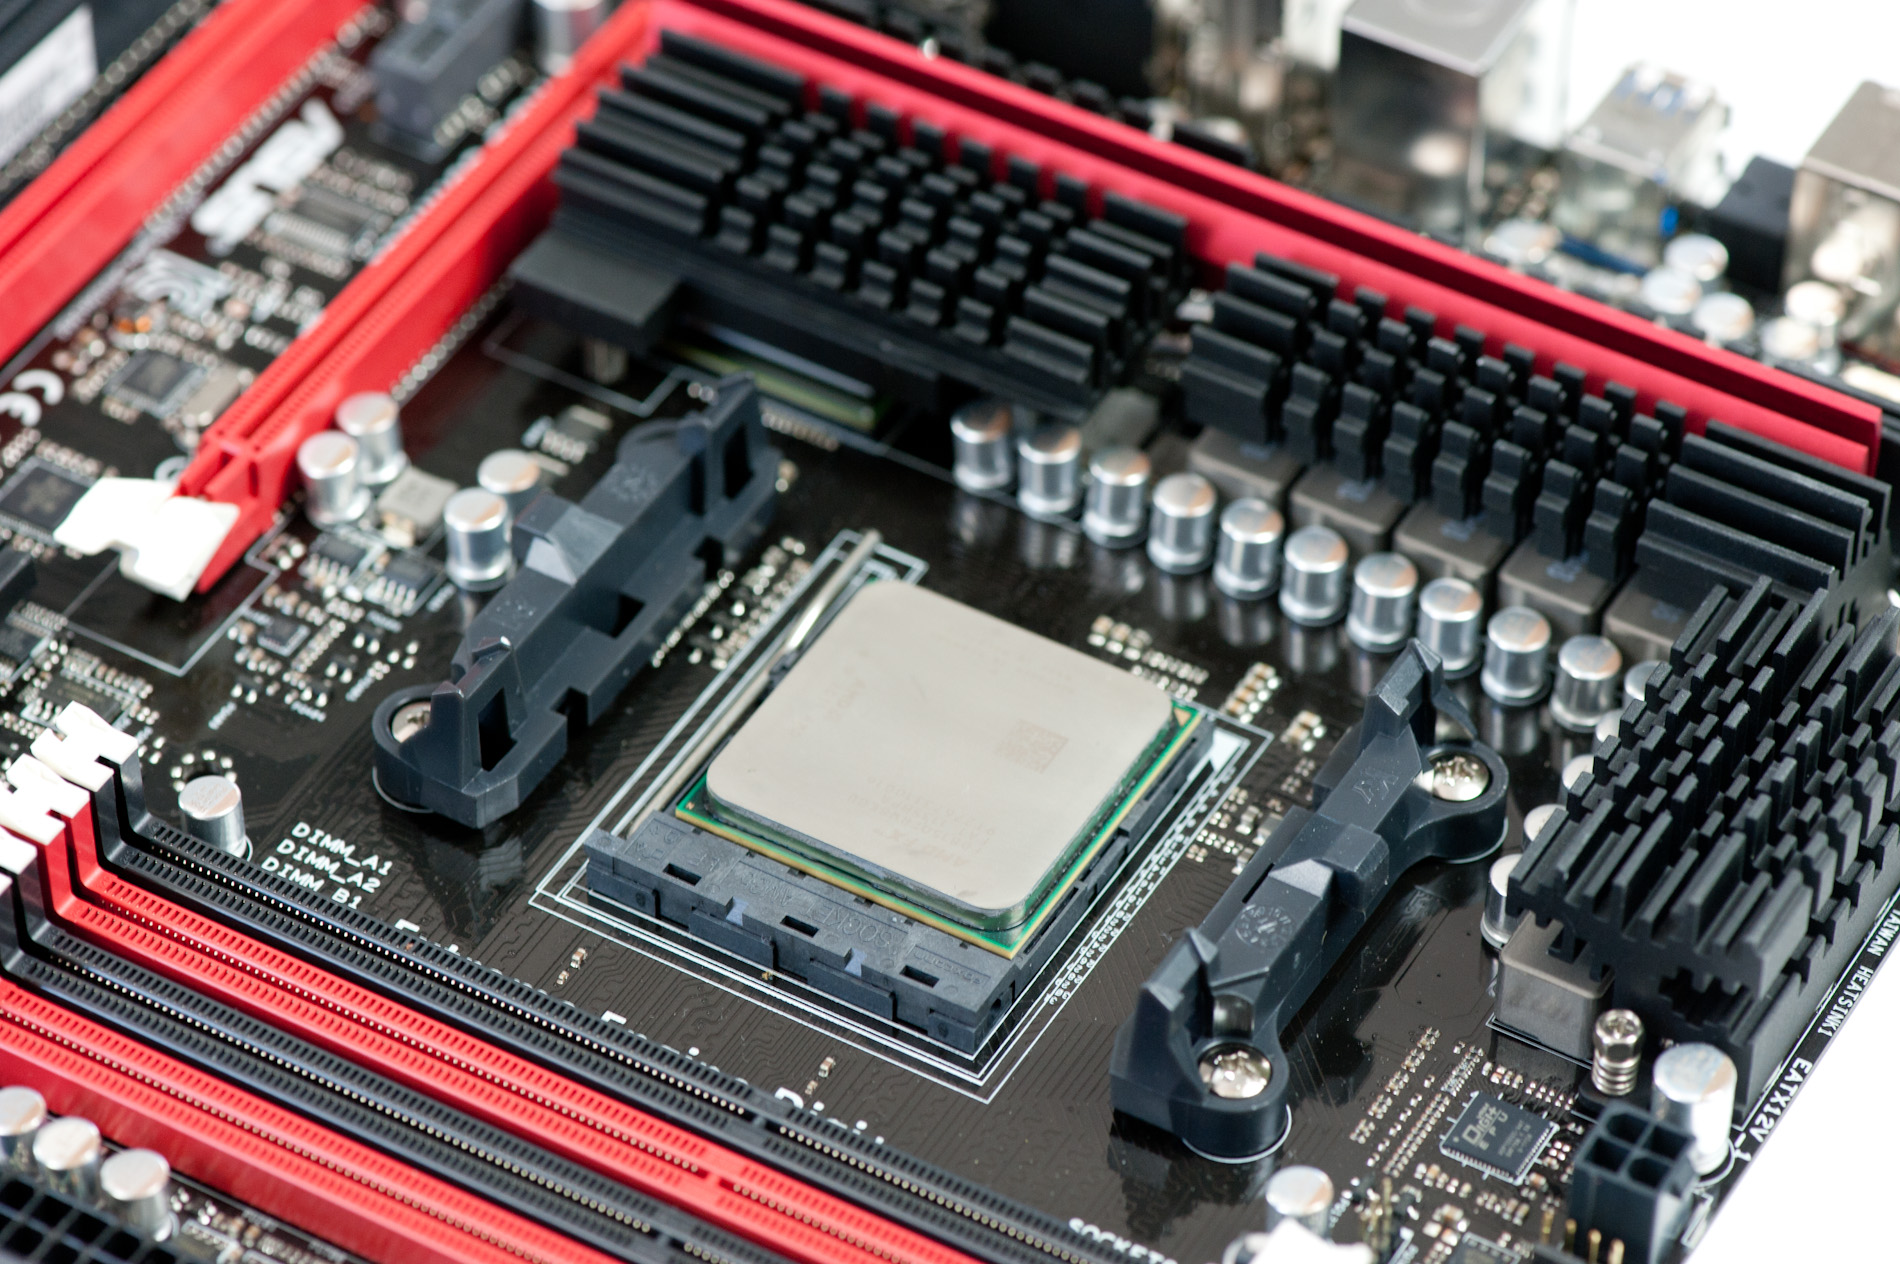 The Bulldozer Review: AMD FX-8150 Tested